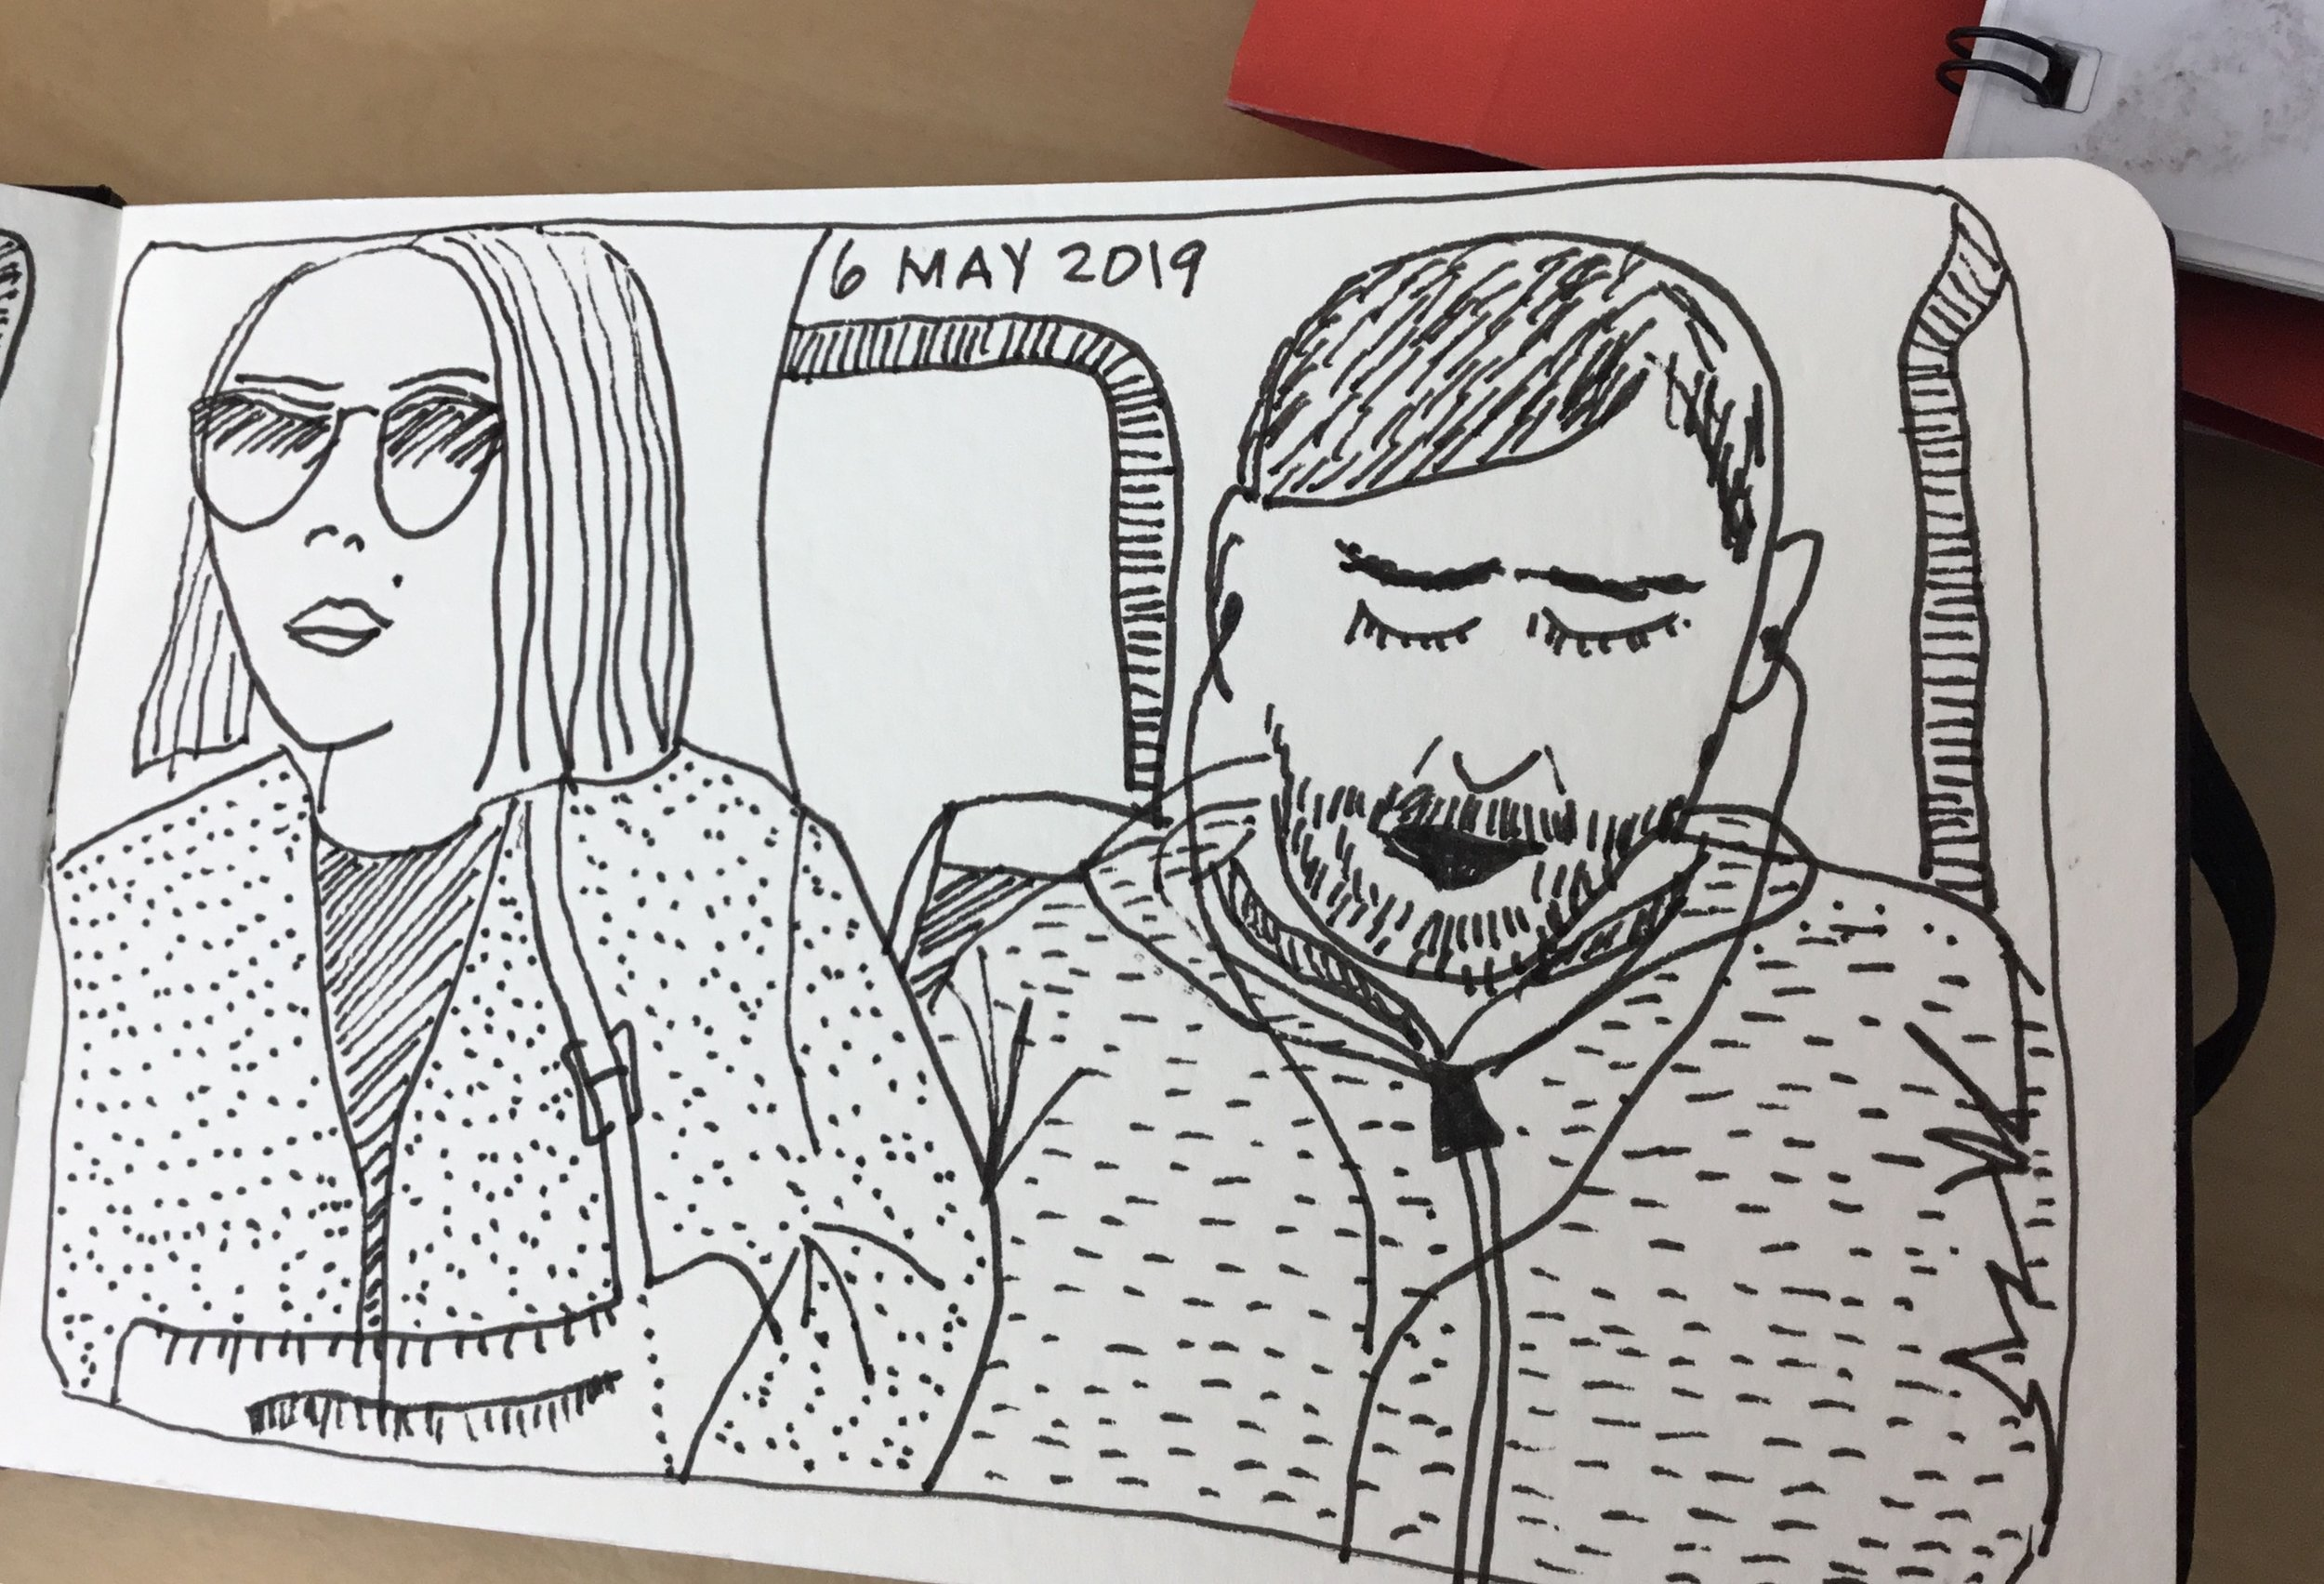 Tram travellers, 6 May 2019